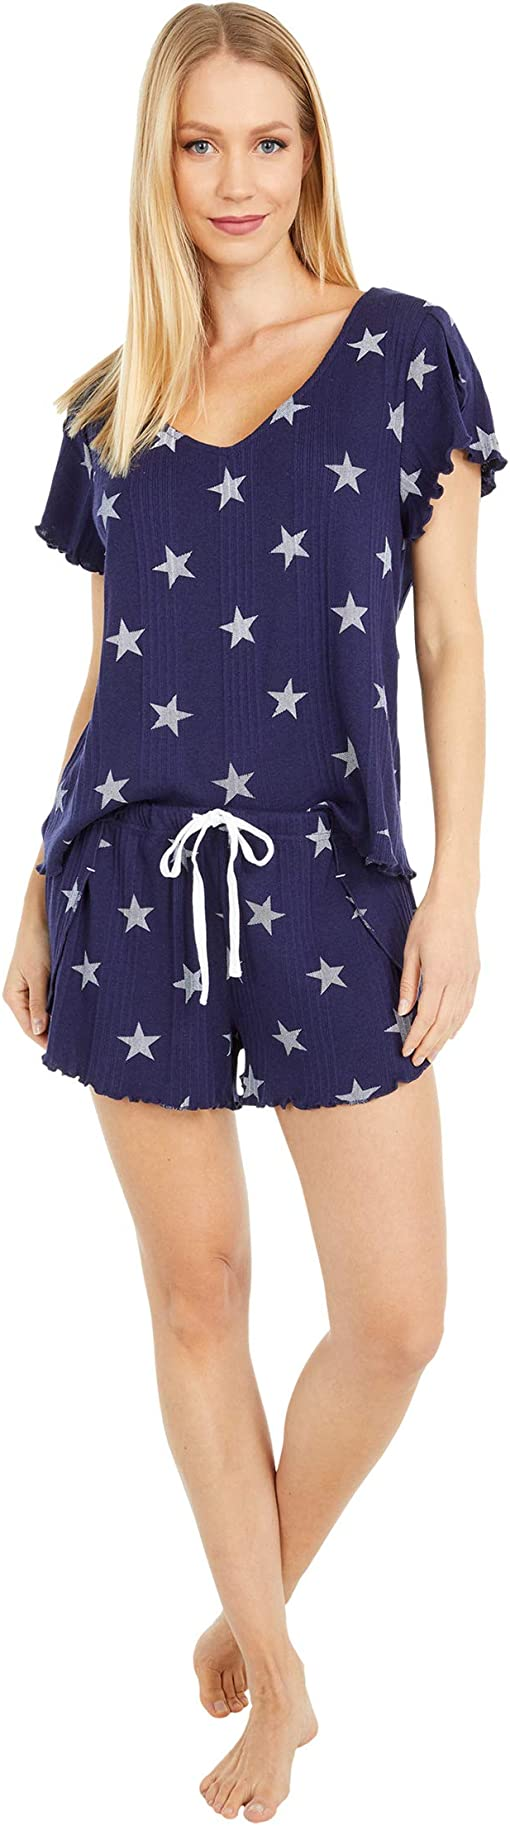 Heather Peacoat Joyful Stars